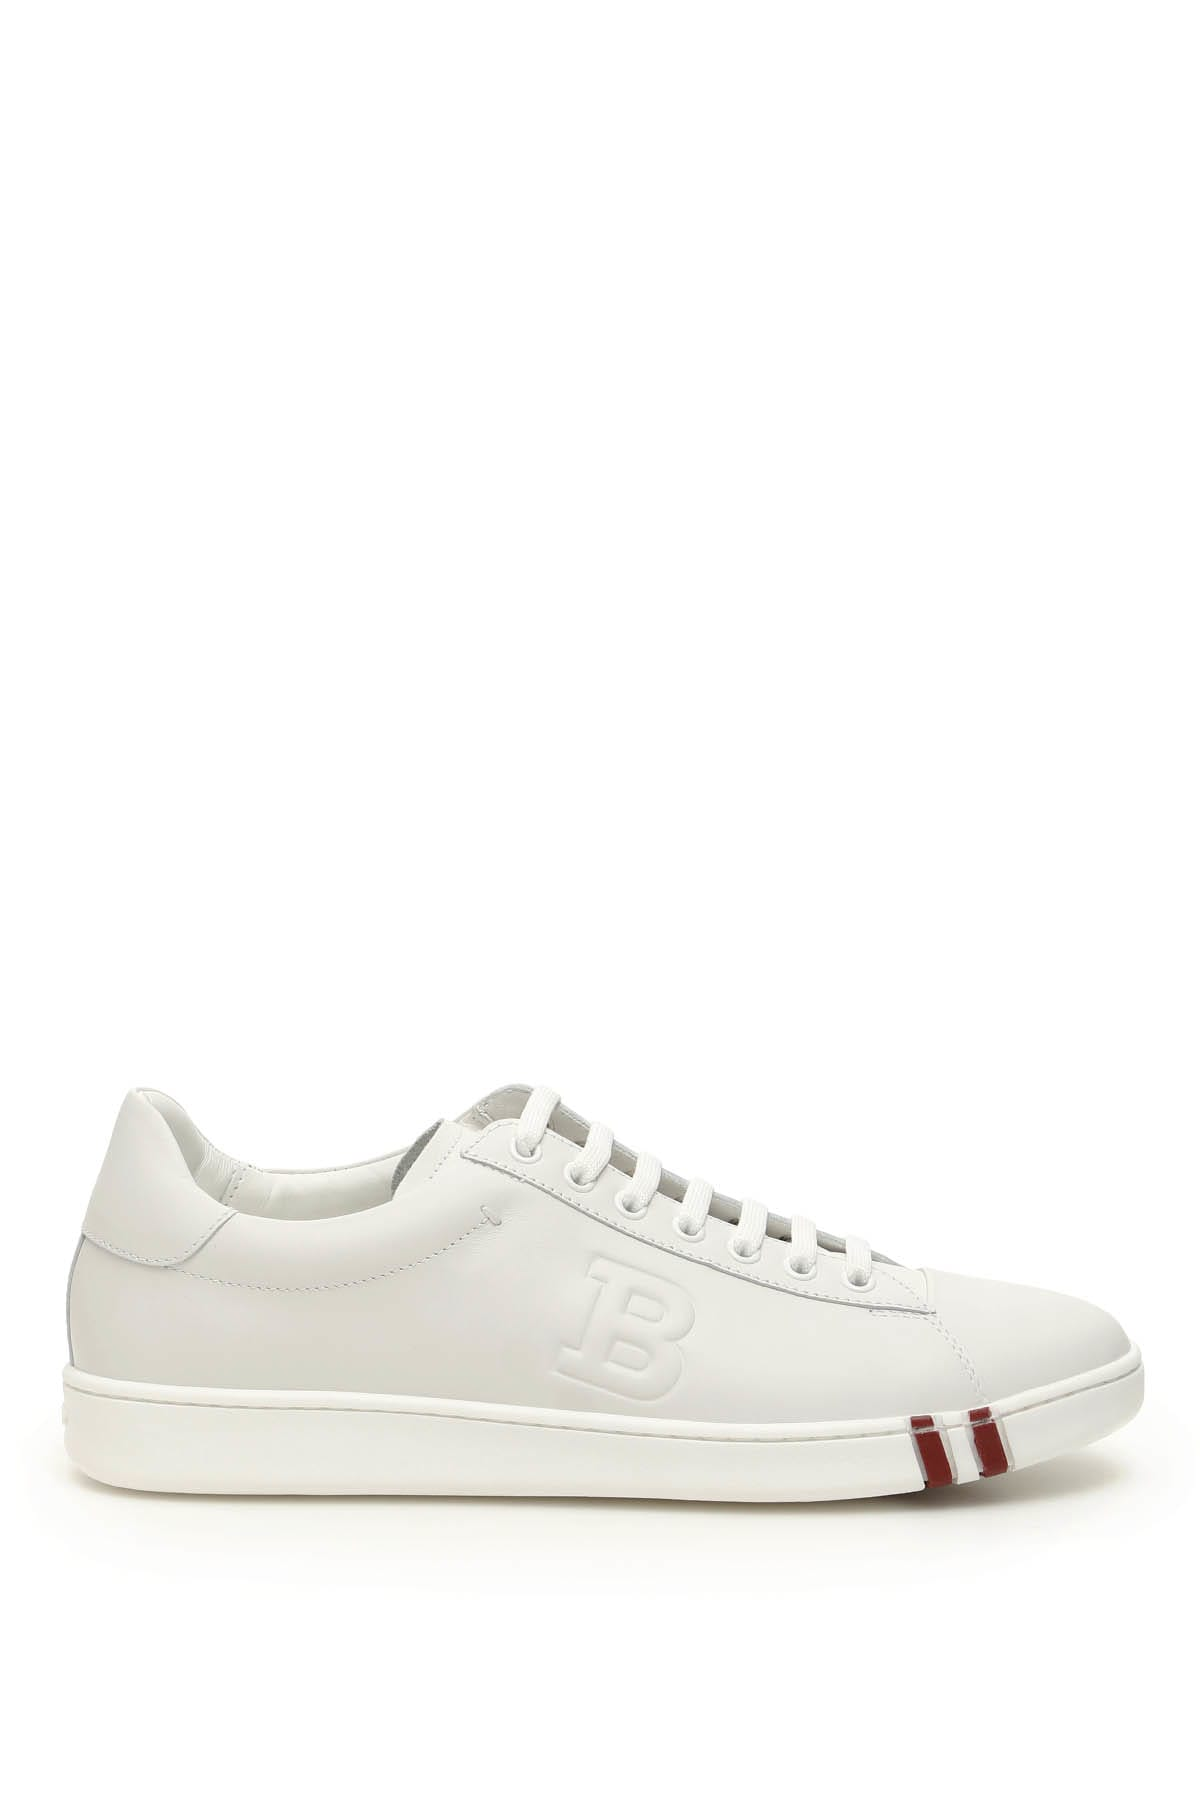 Bally Leathers ASHER LEATHER SNEAKERS